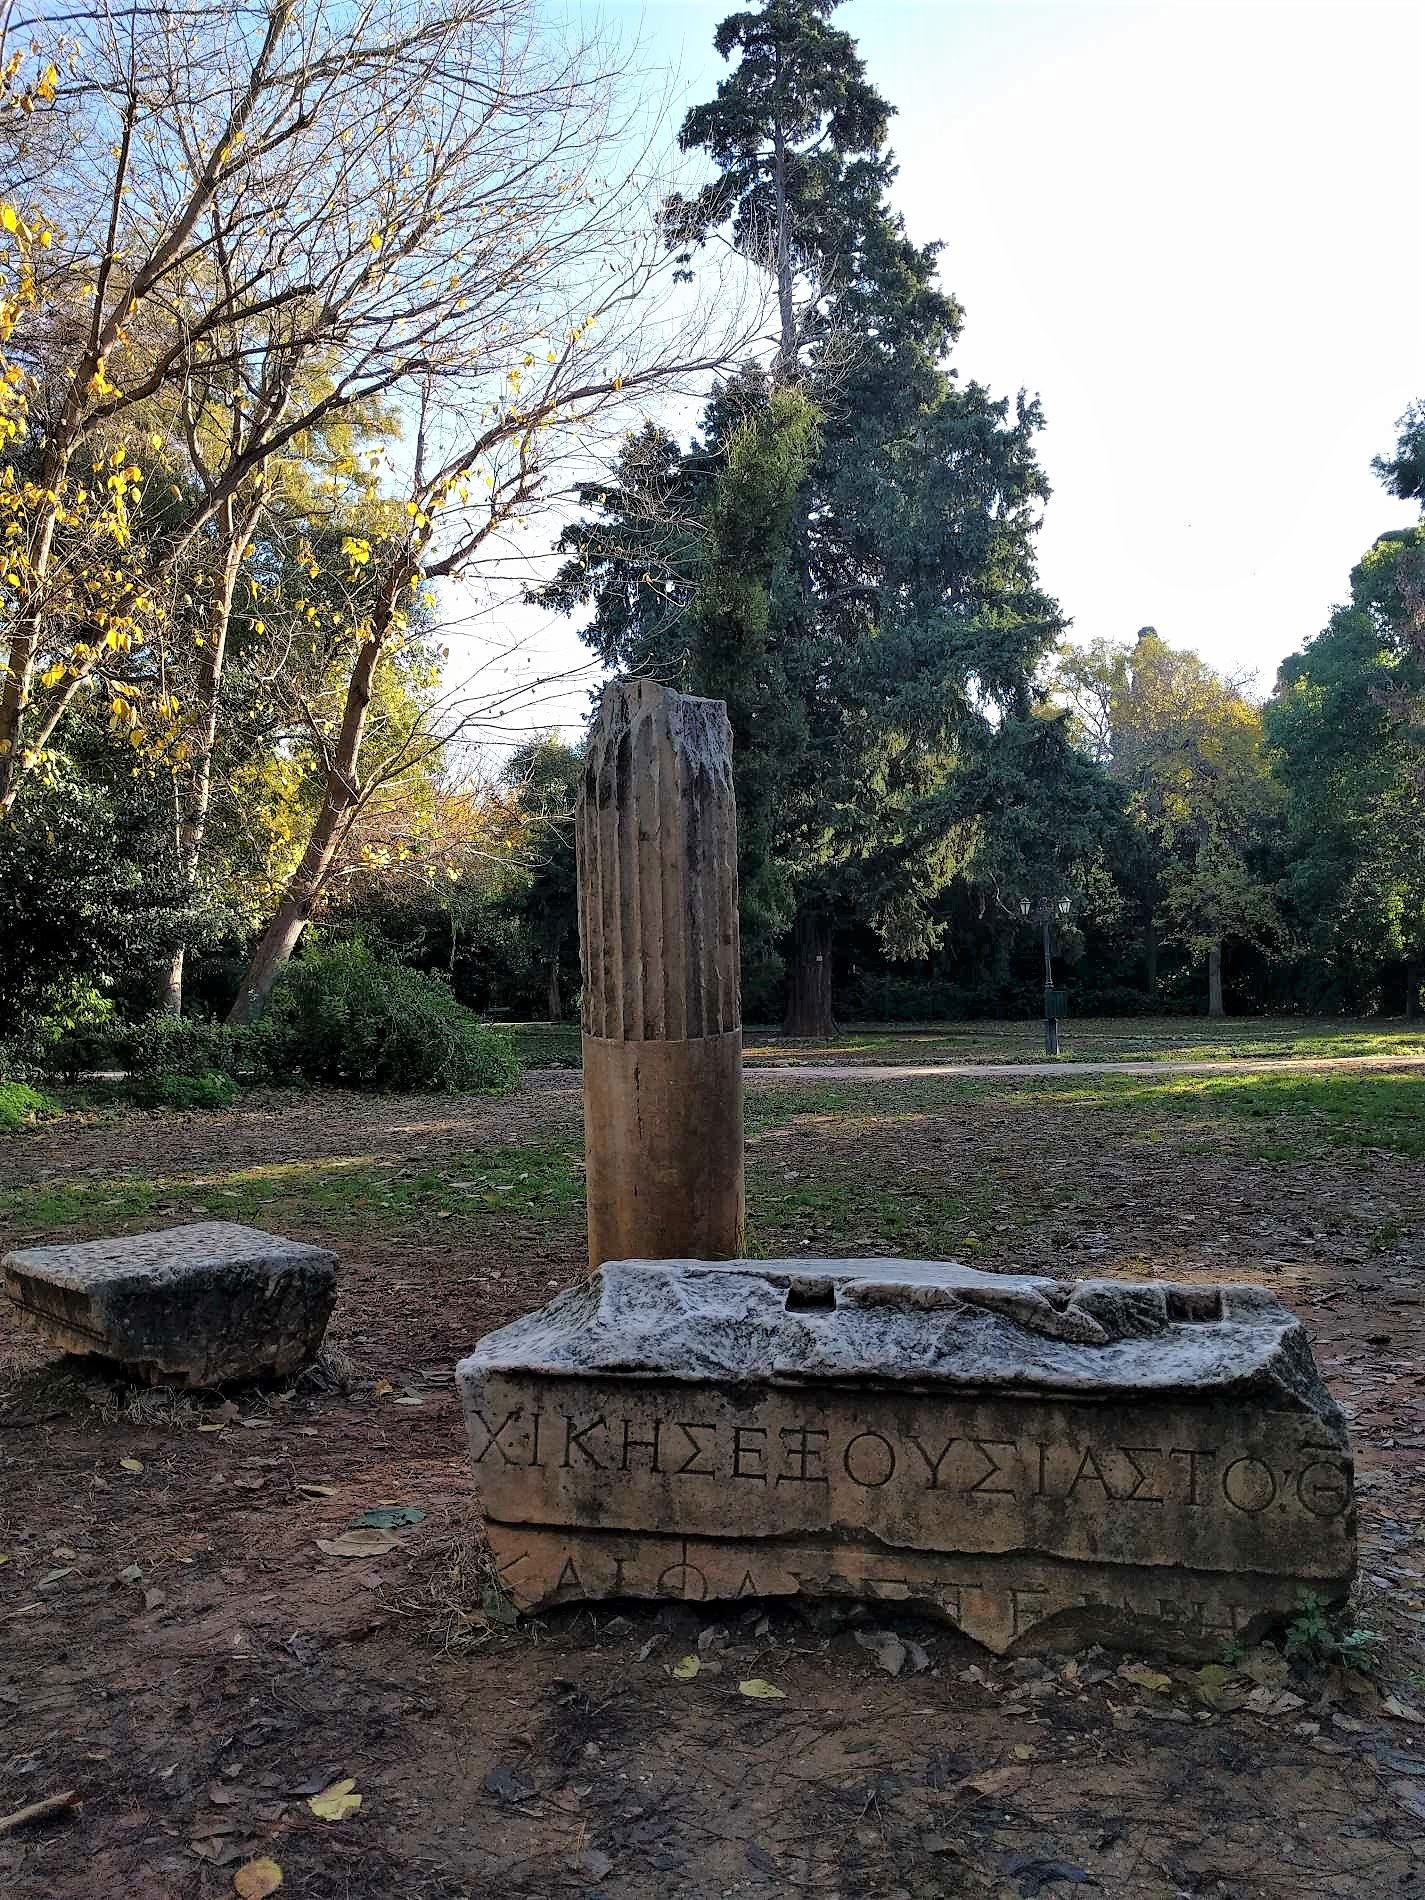 Ancient Greek history has left remnants all over the National Garden. Source: Truevoyagers